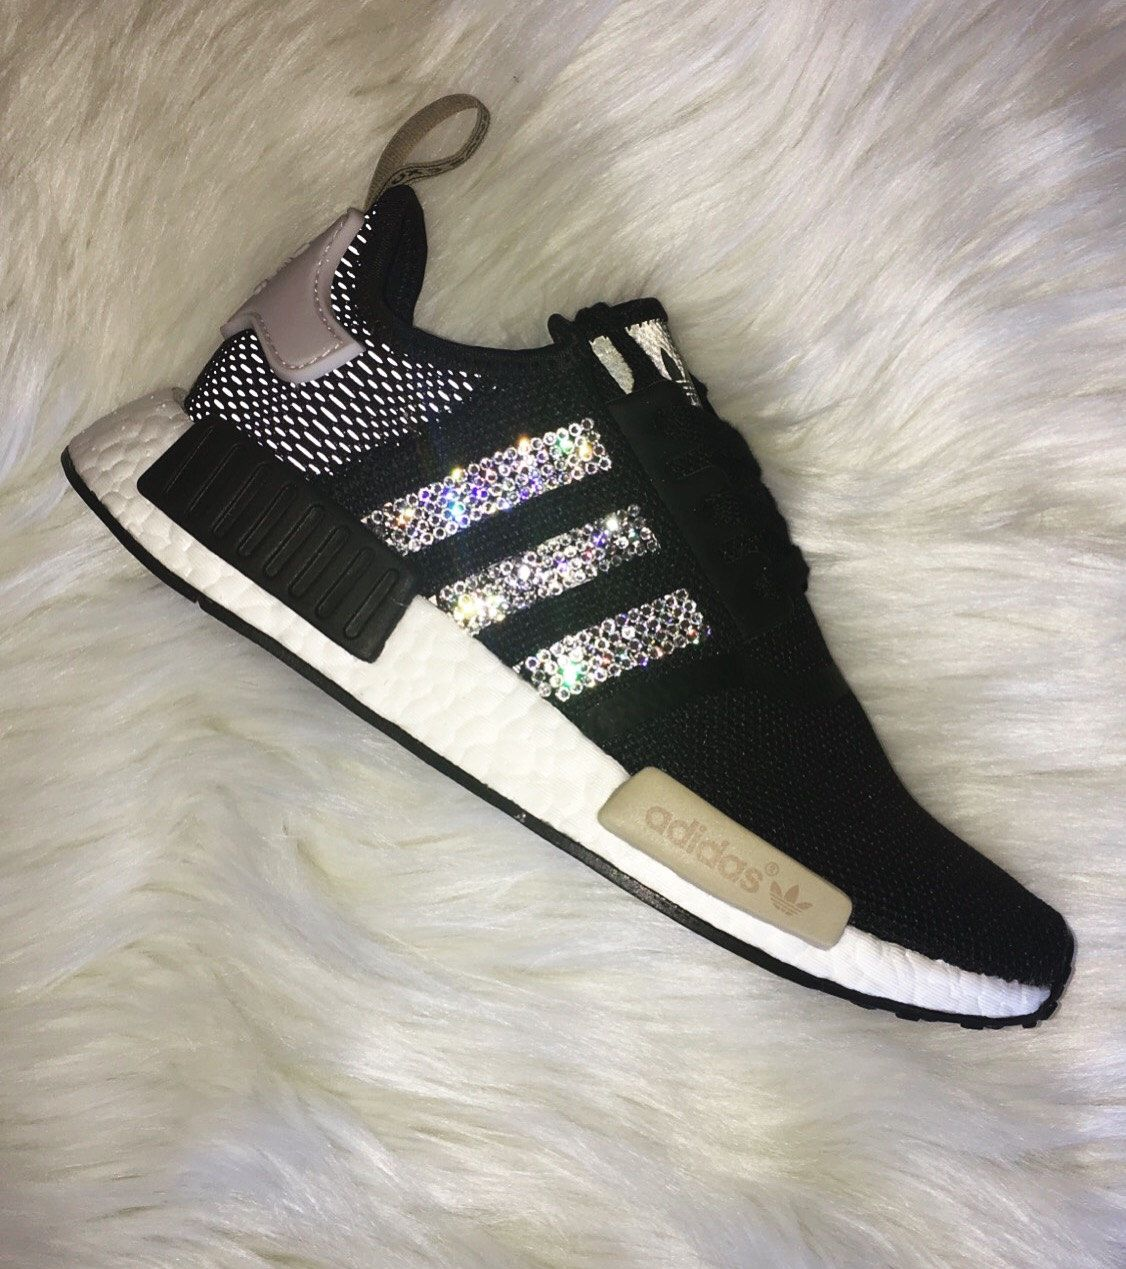 Swarovski Women's Adidas NMD Casual Running Shoes